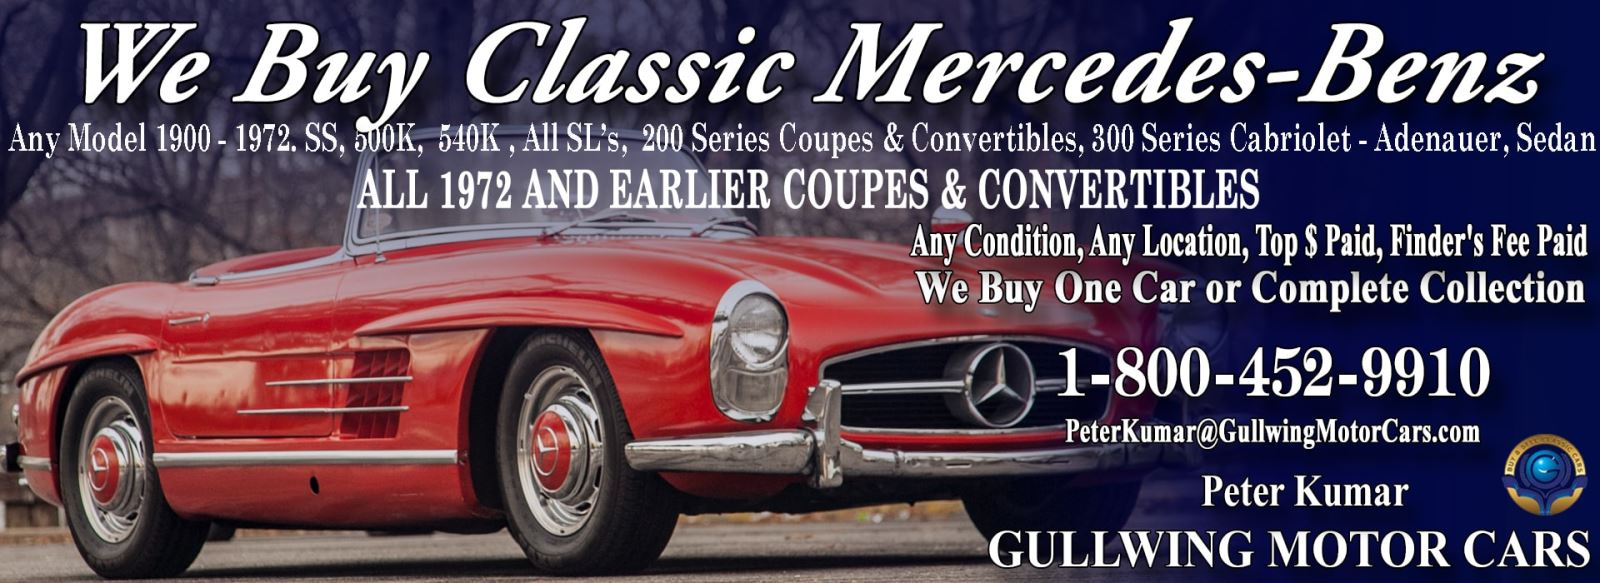 Classic Mercedes 500K for sale, we buy vintage Mercedes 500K. Call Peter Kumar. Gullwing Motor